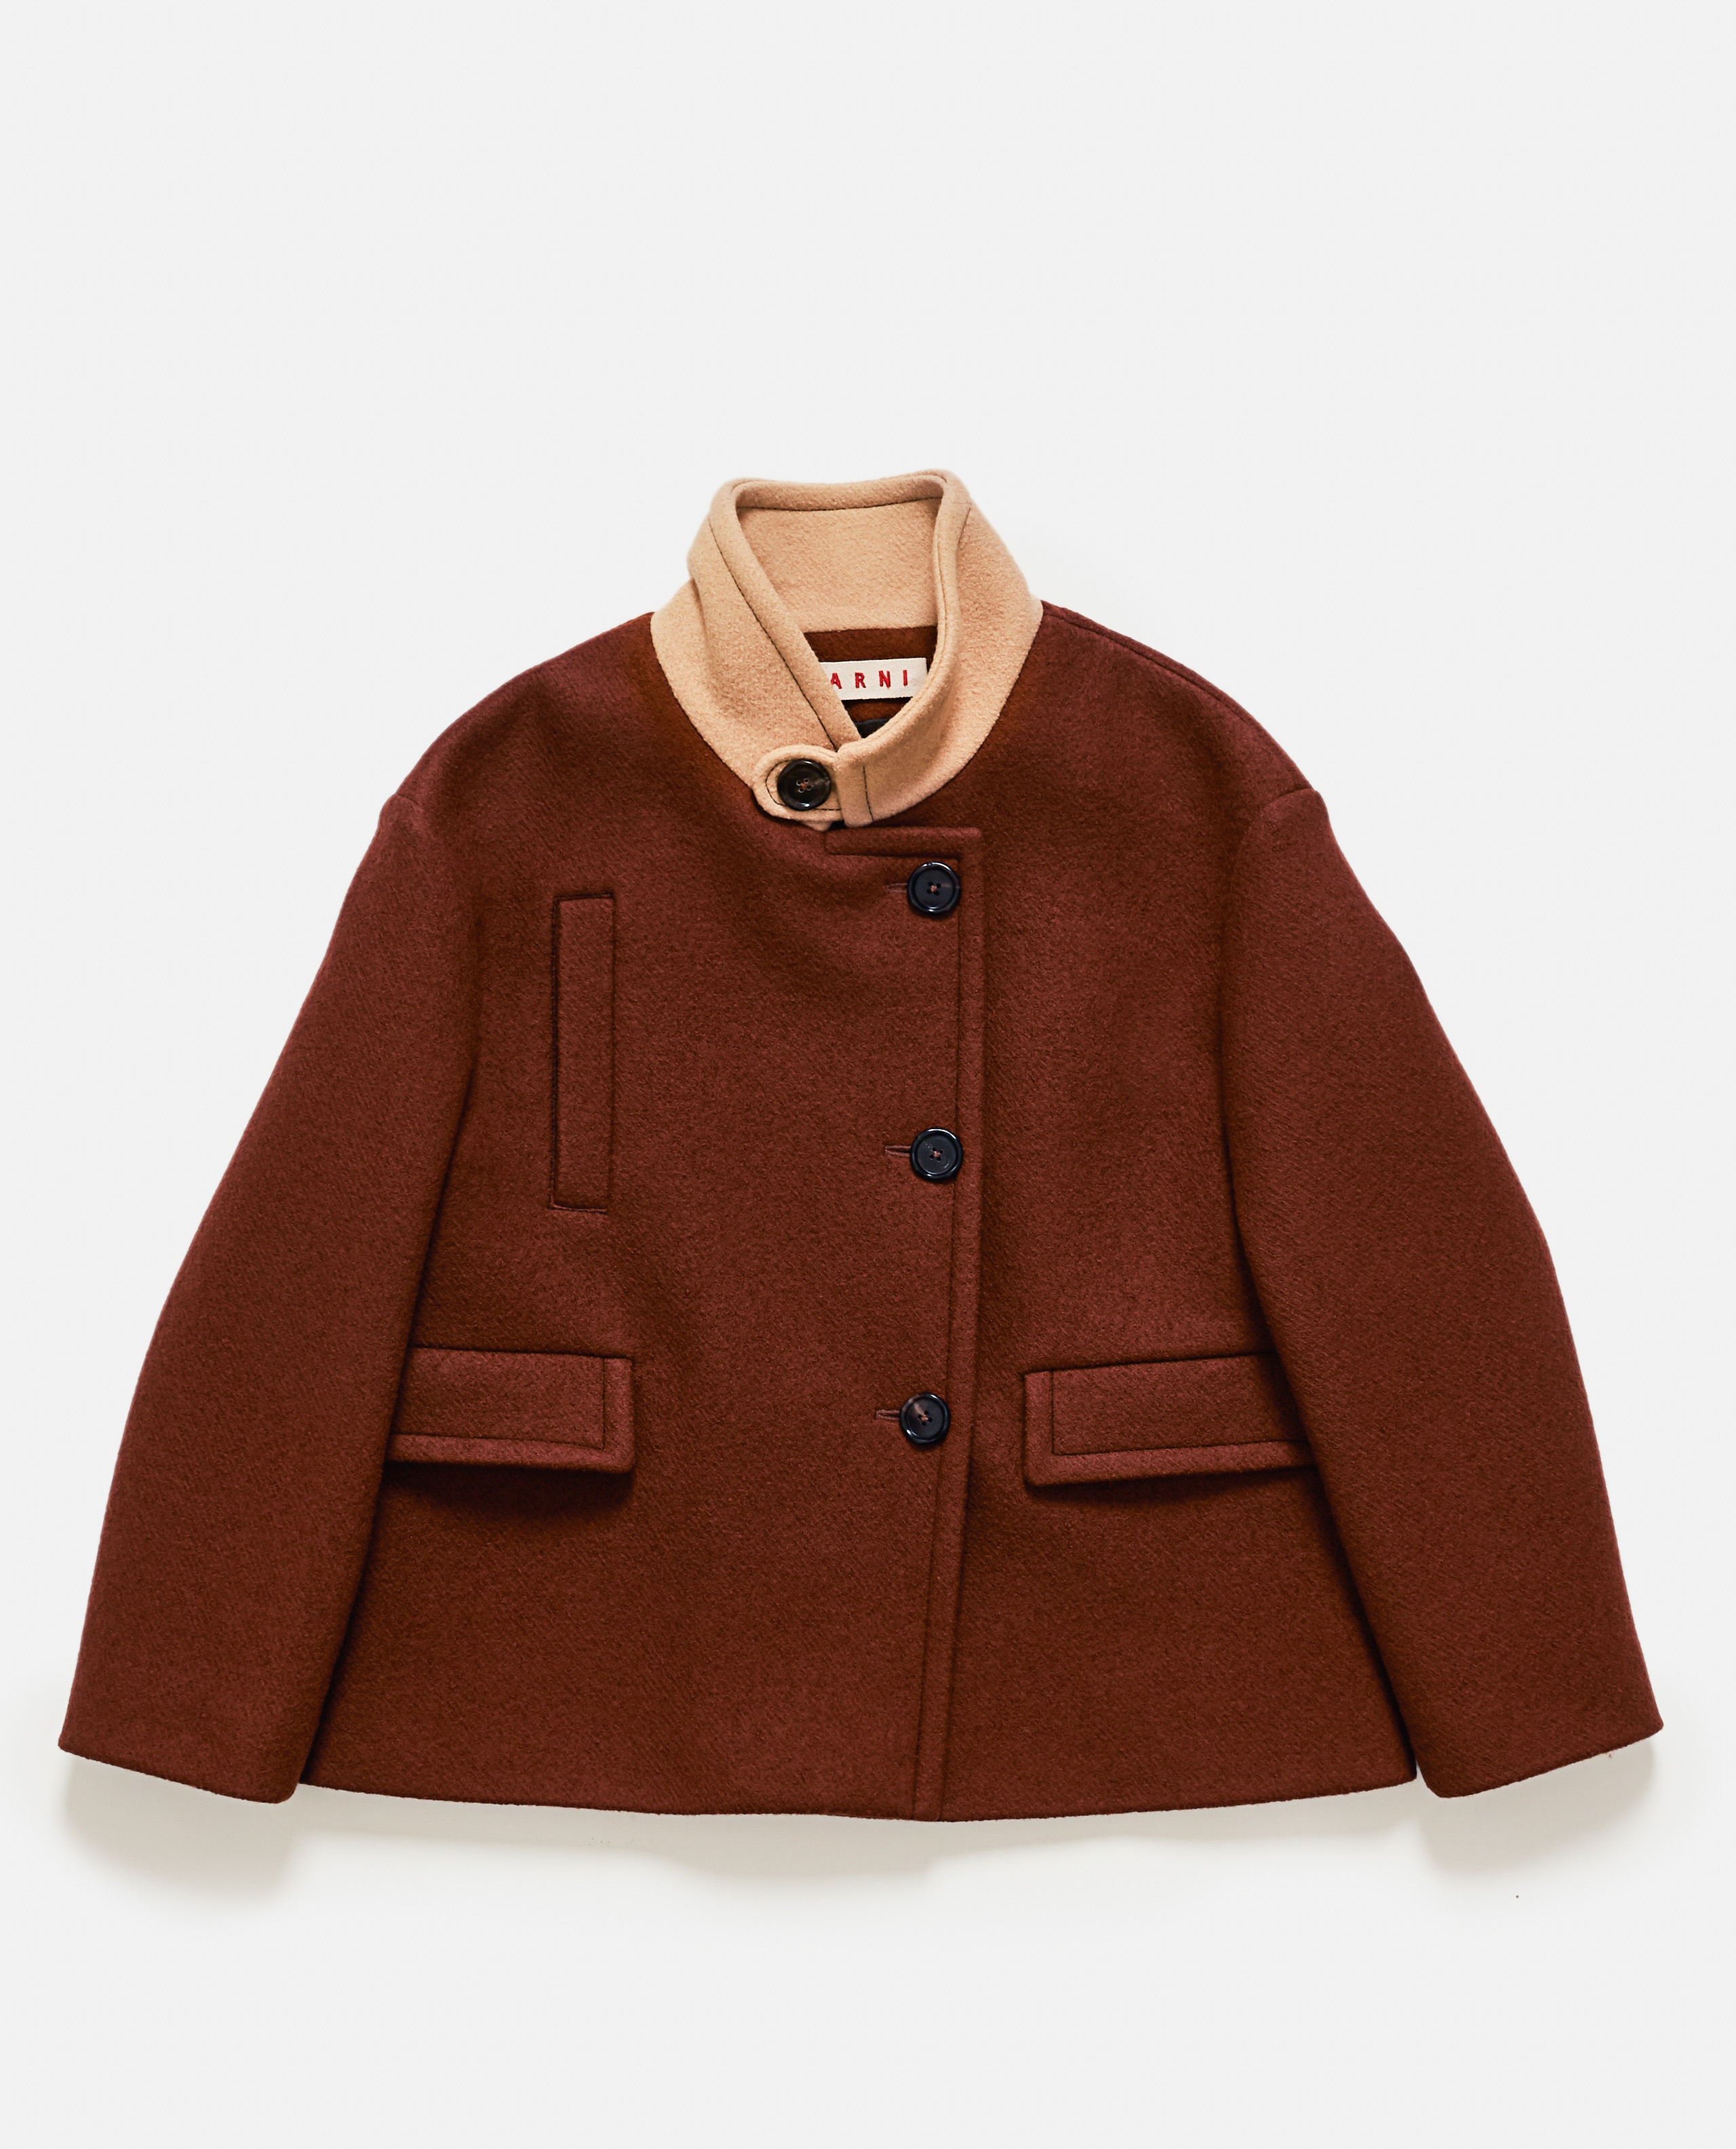 Wool Jacket Women Marni 000180950026919 2